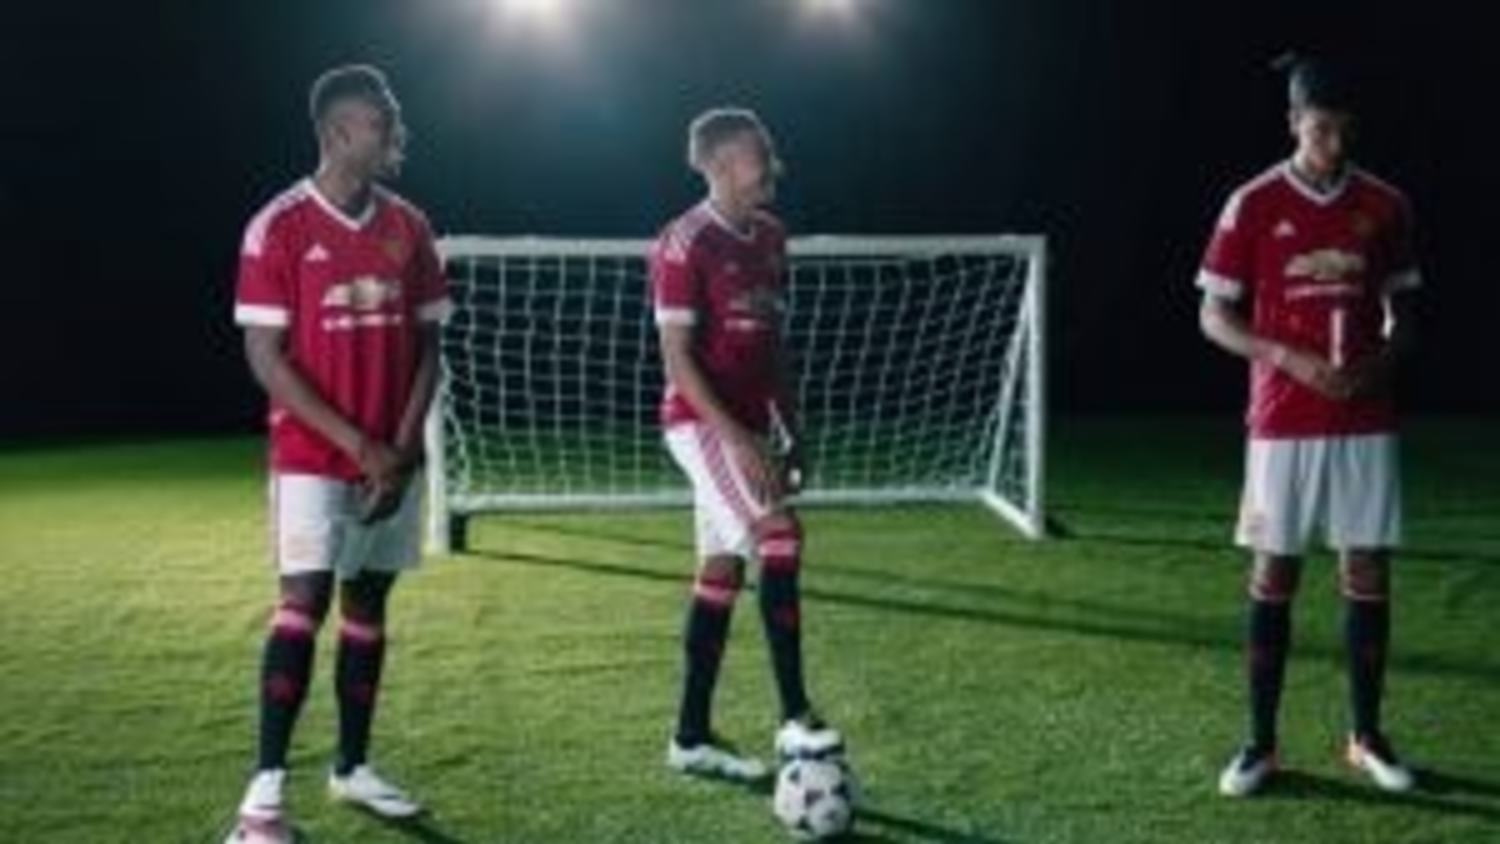 Man United Release New Cringeworthy Advert: Dab University